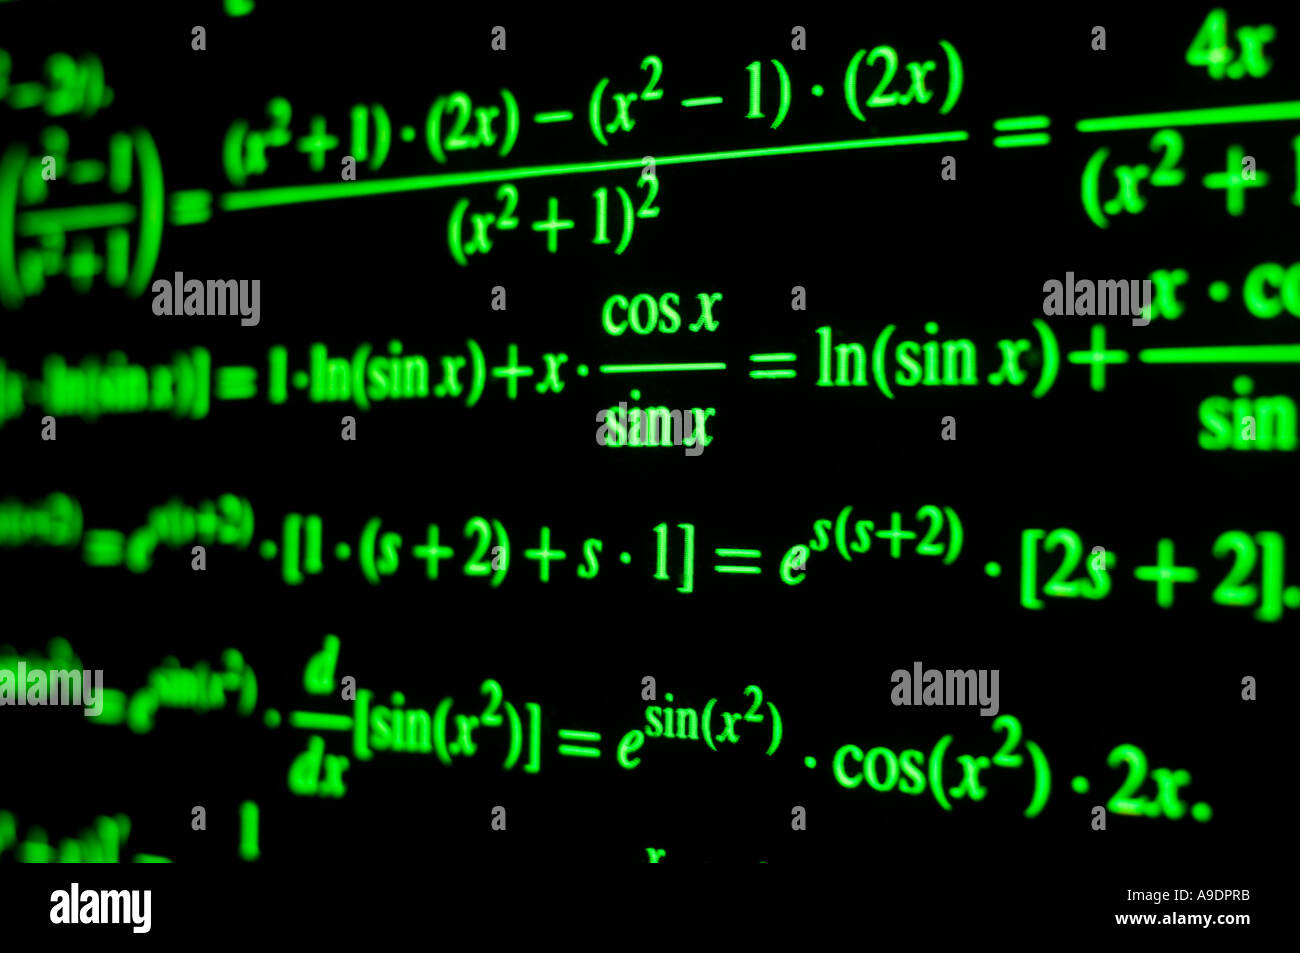 Mathematical symbols stock photos mathematical symbols stock multiple mathematical symbols on graph paper projected onto computer screen stock image biocorpaavc